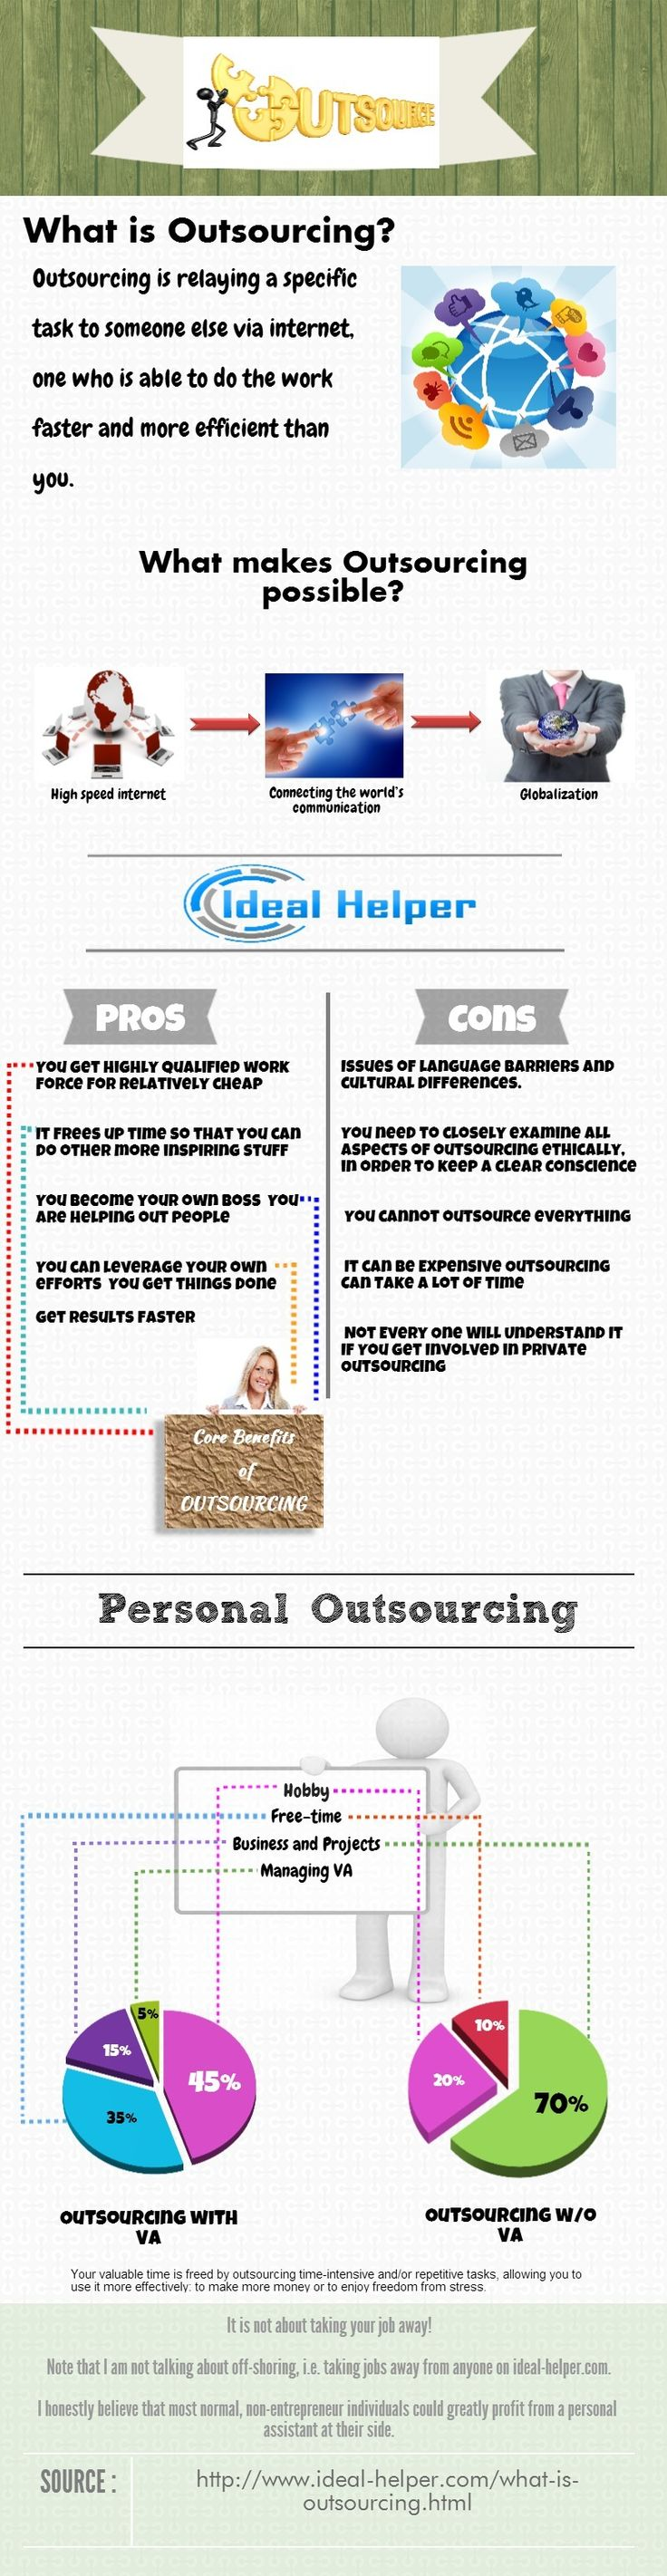 What is outsourcing explained in an infographic